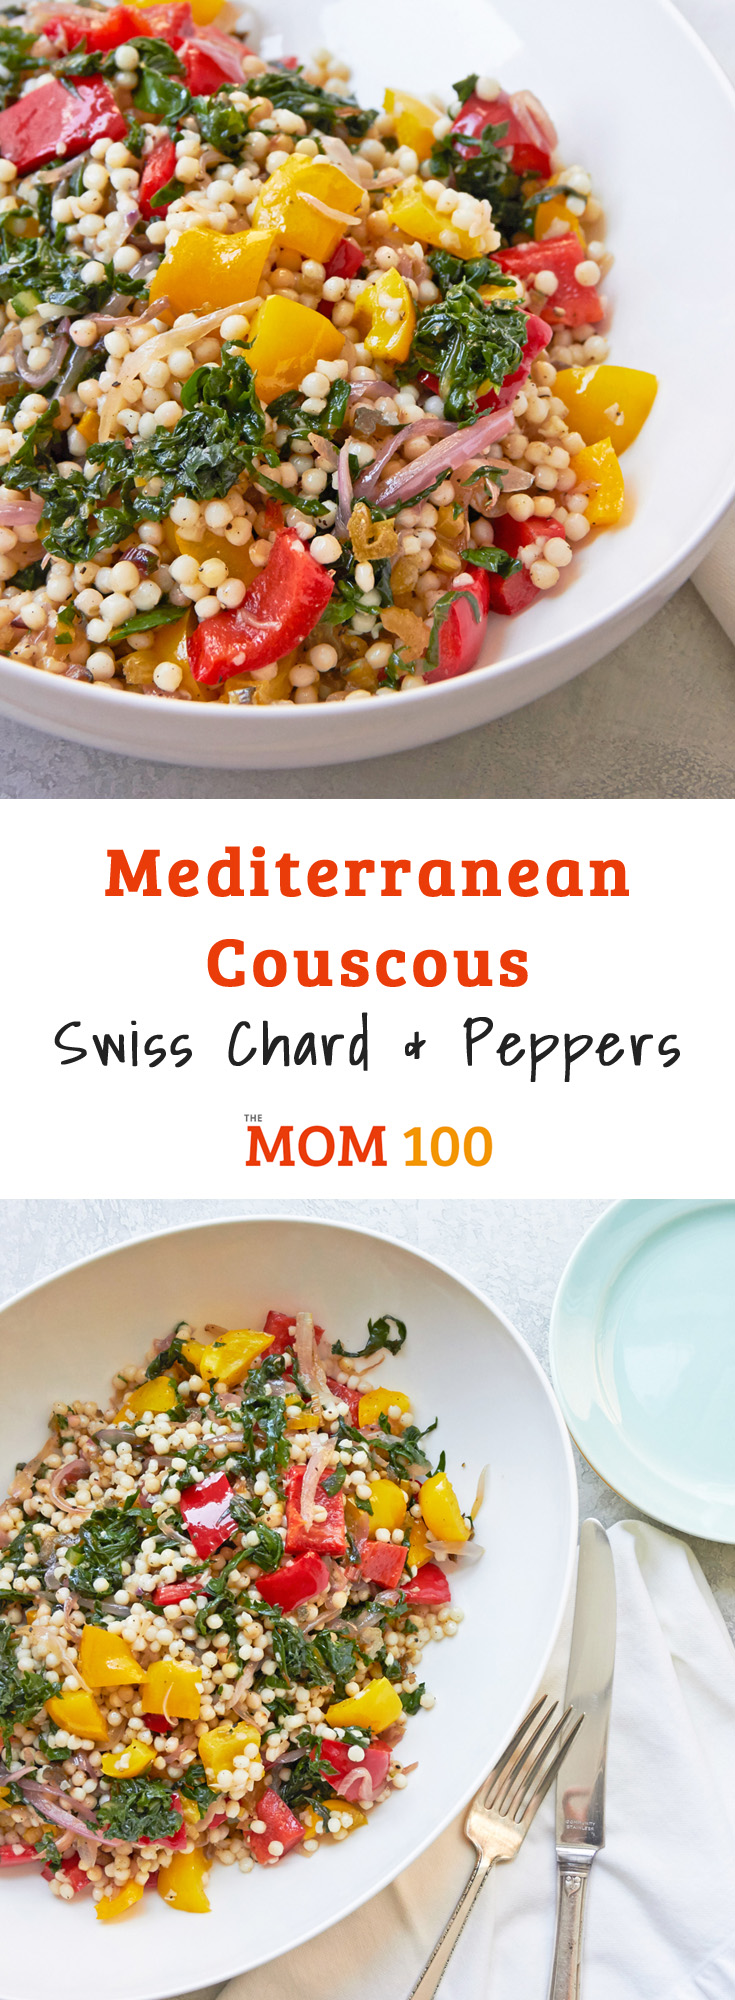 This Mediterranean Couscous, Swiss Chard and Peppers is a fantastic and beautiful side dish. I love the rainbow chard, but you can use other varieties.